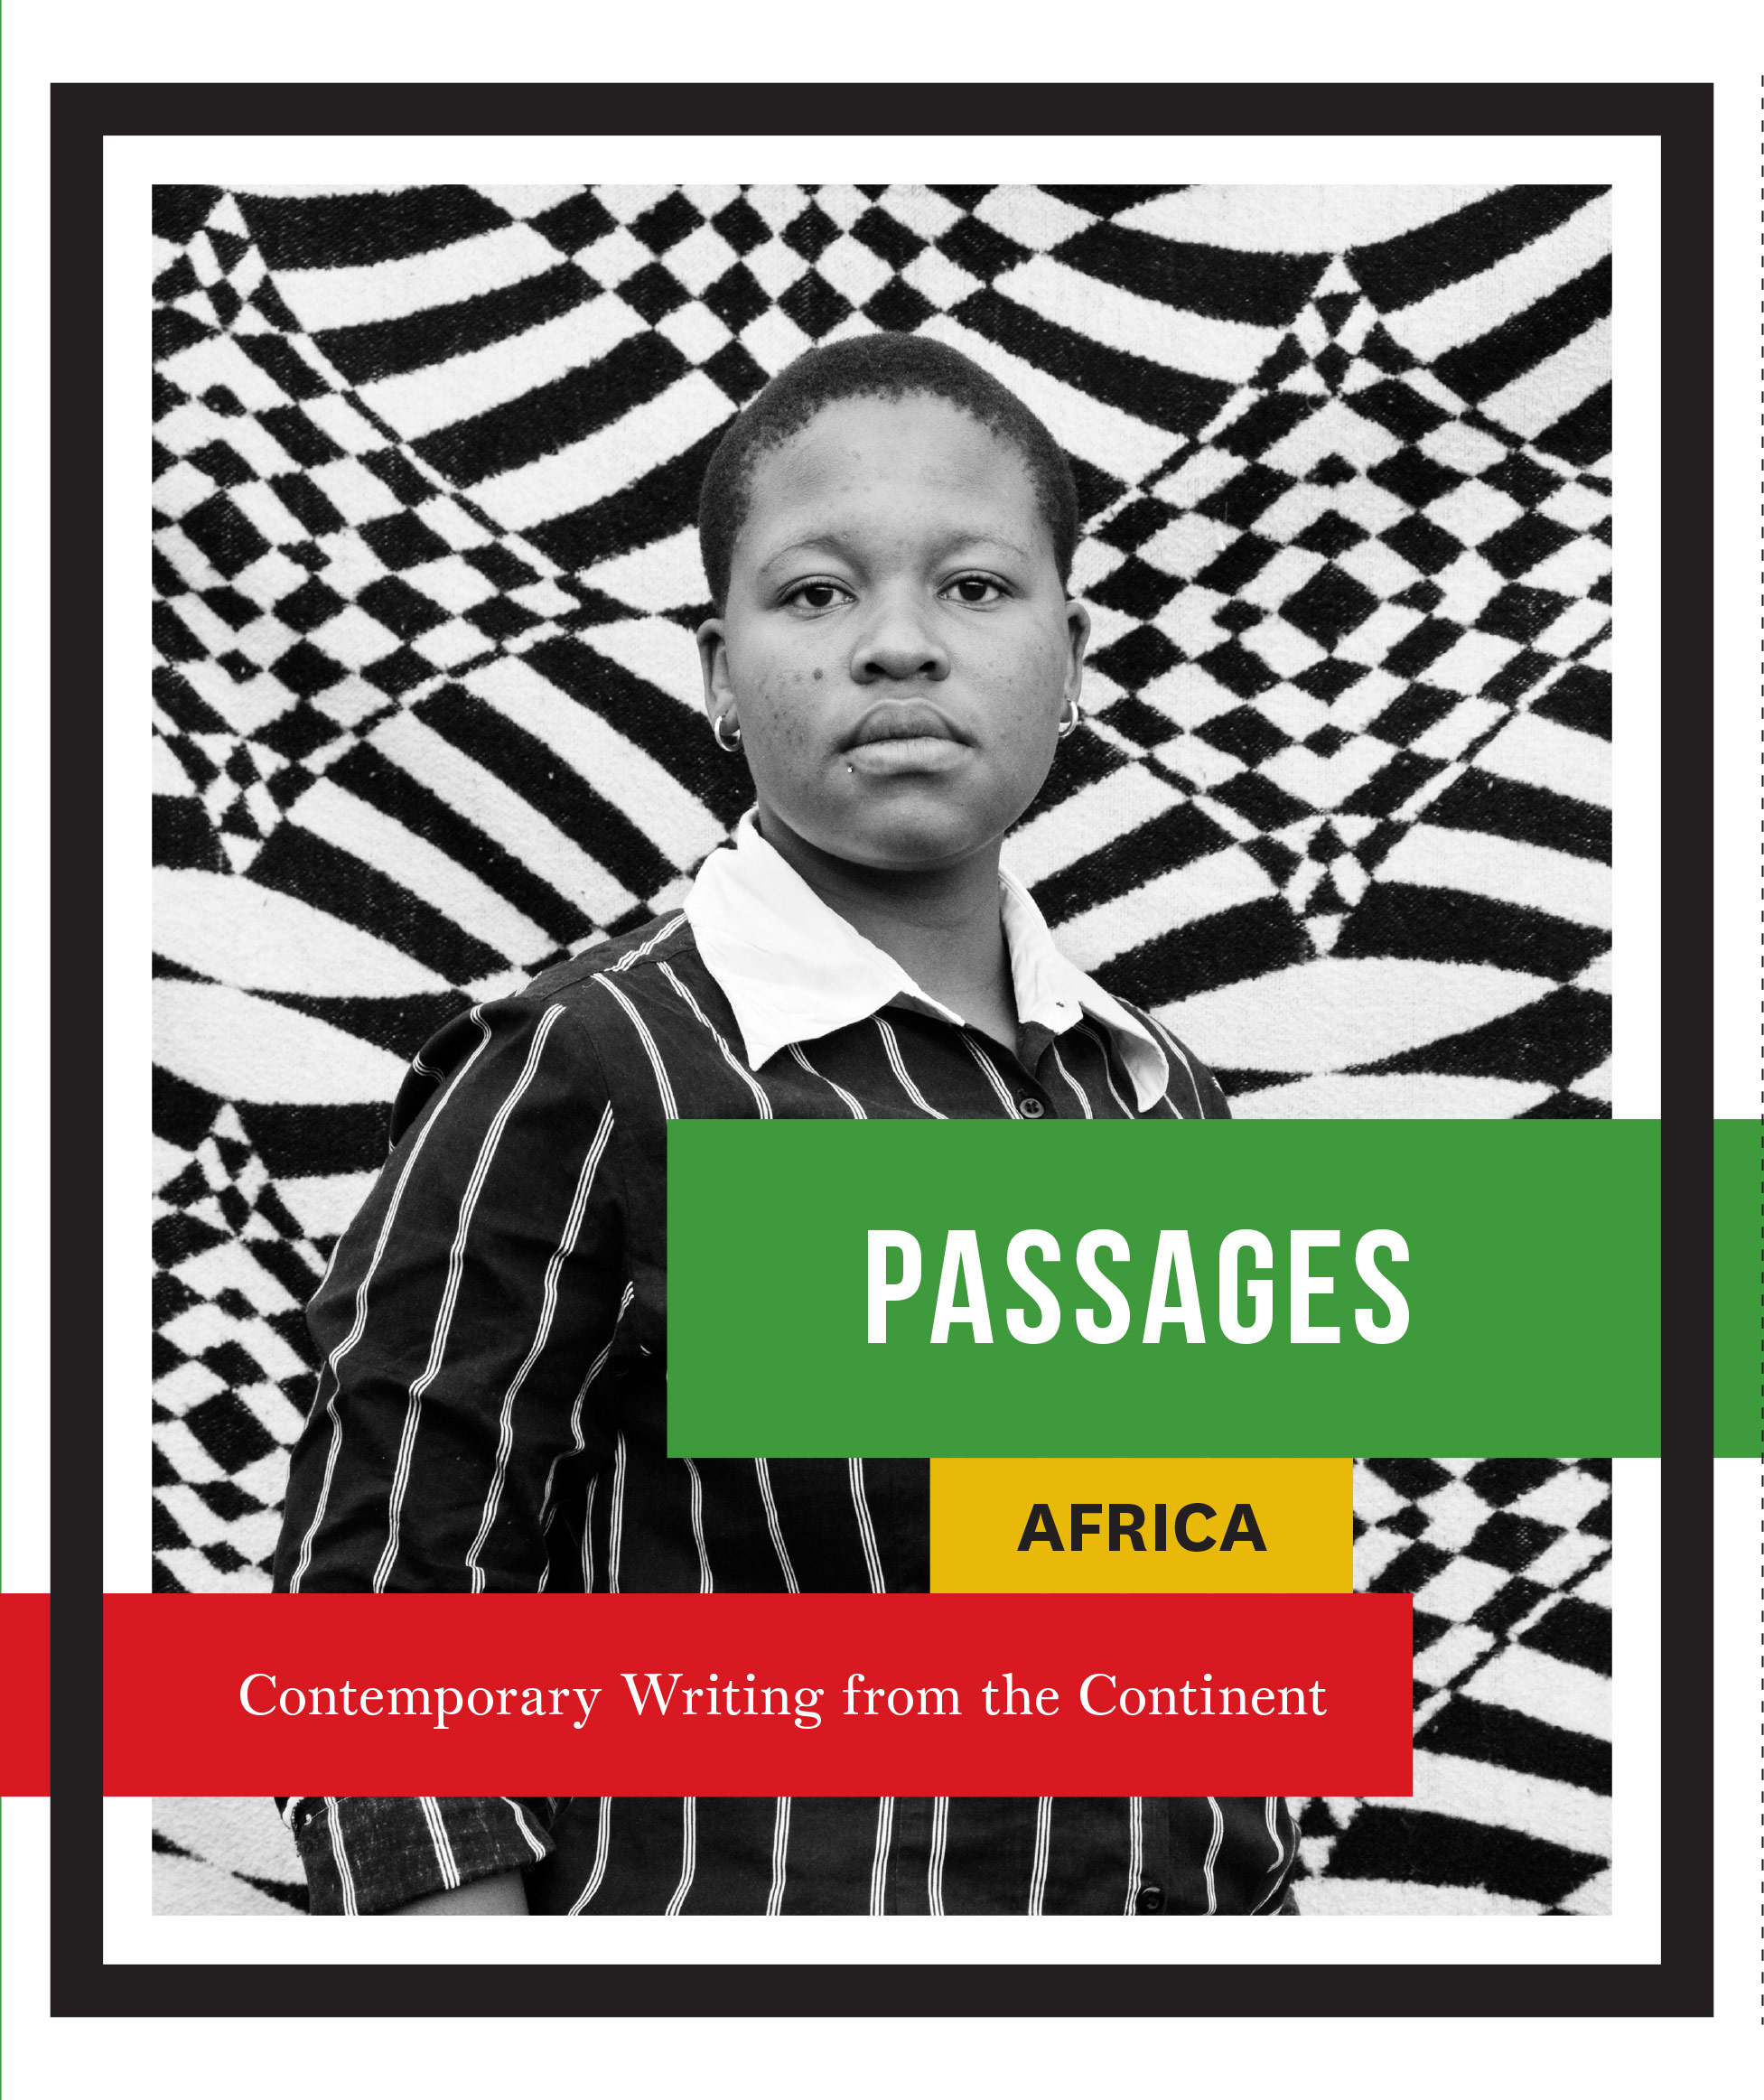 PASSAGES_Africa_cover_front.jpg